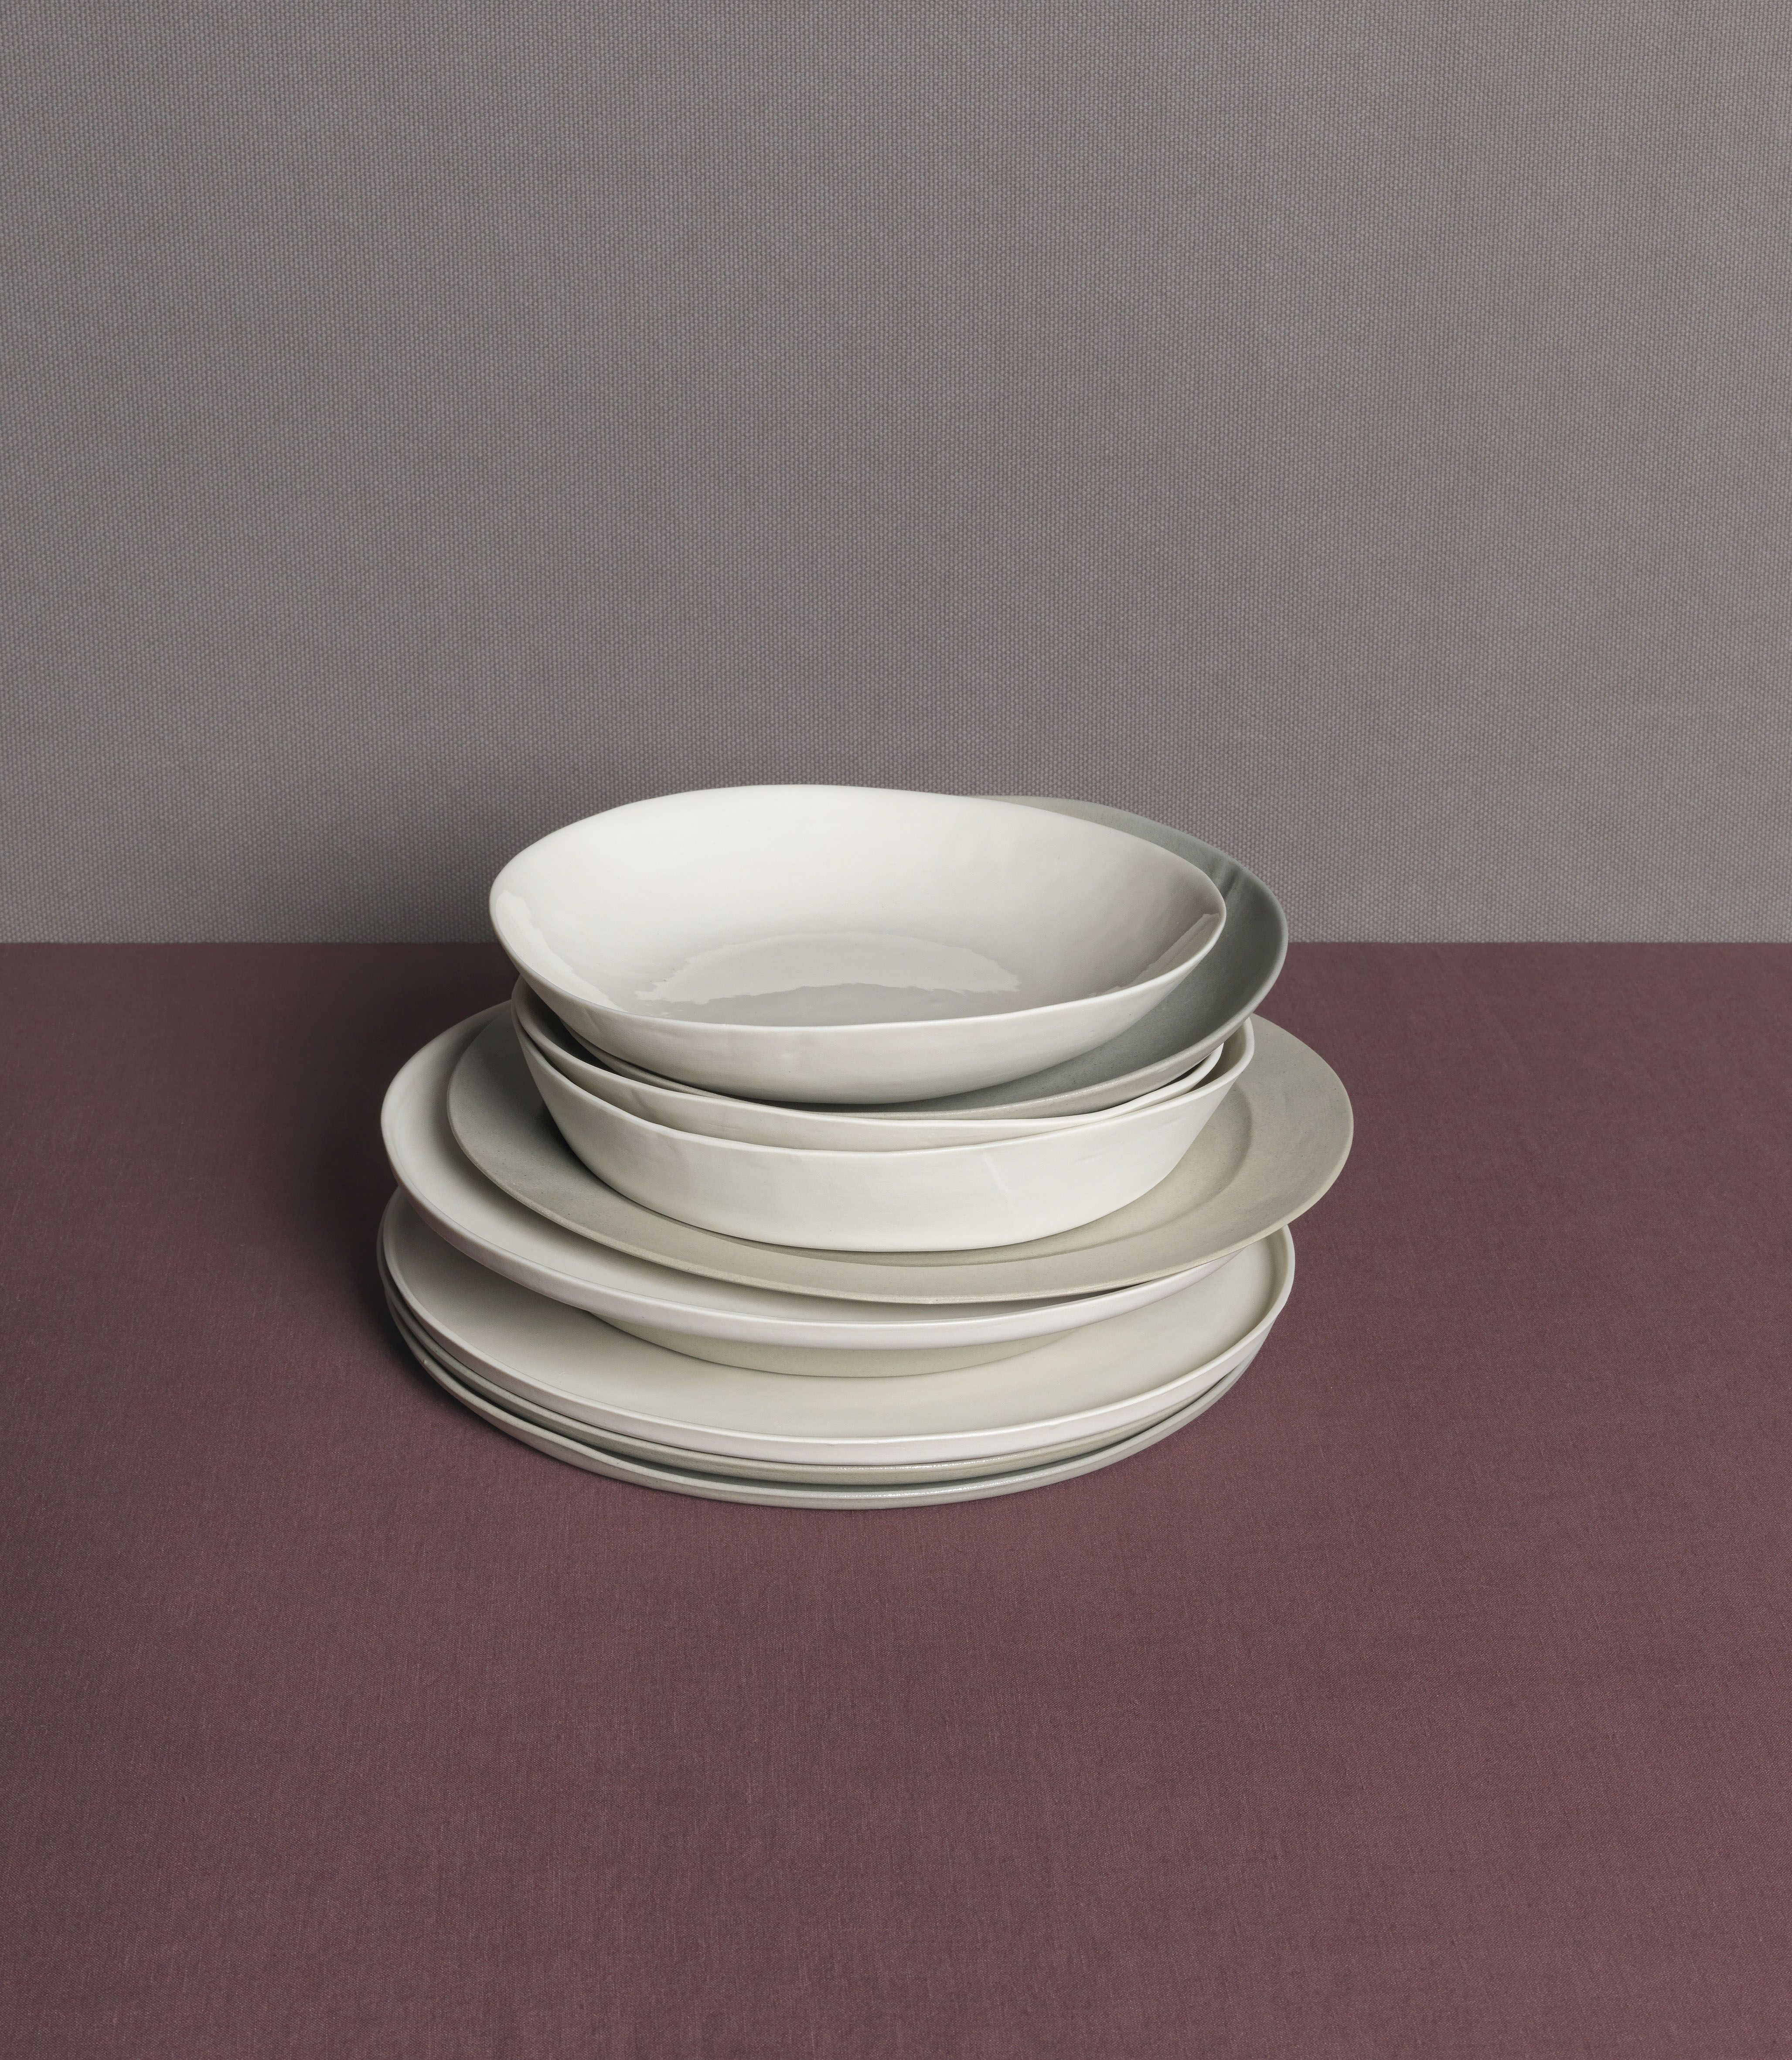 Fabric Effect Ceramics From Society Limonta Remodelista Ceramic Tableware Ceramic Ware Ceramics